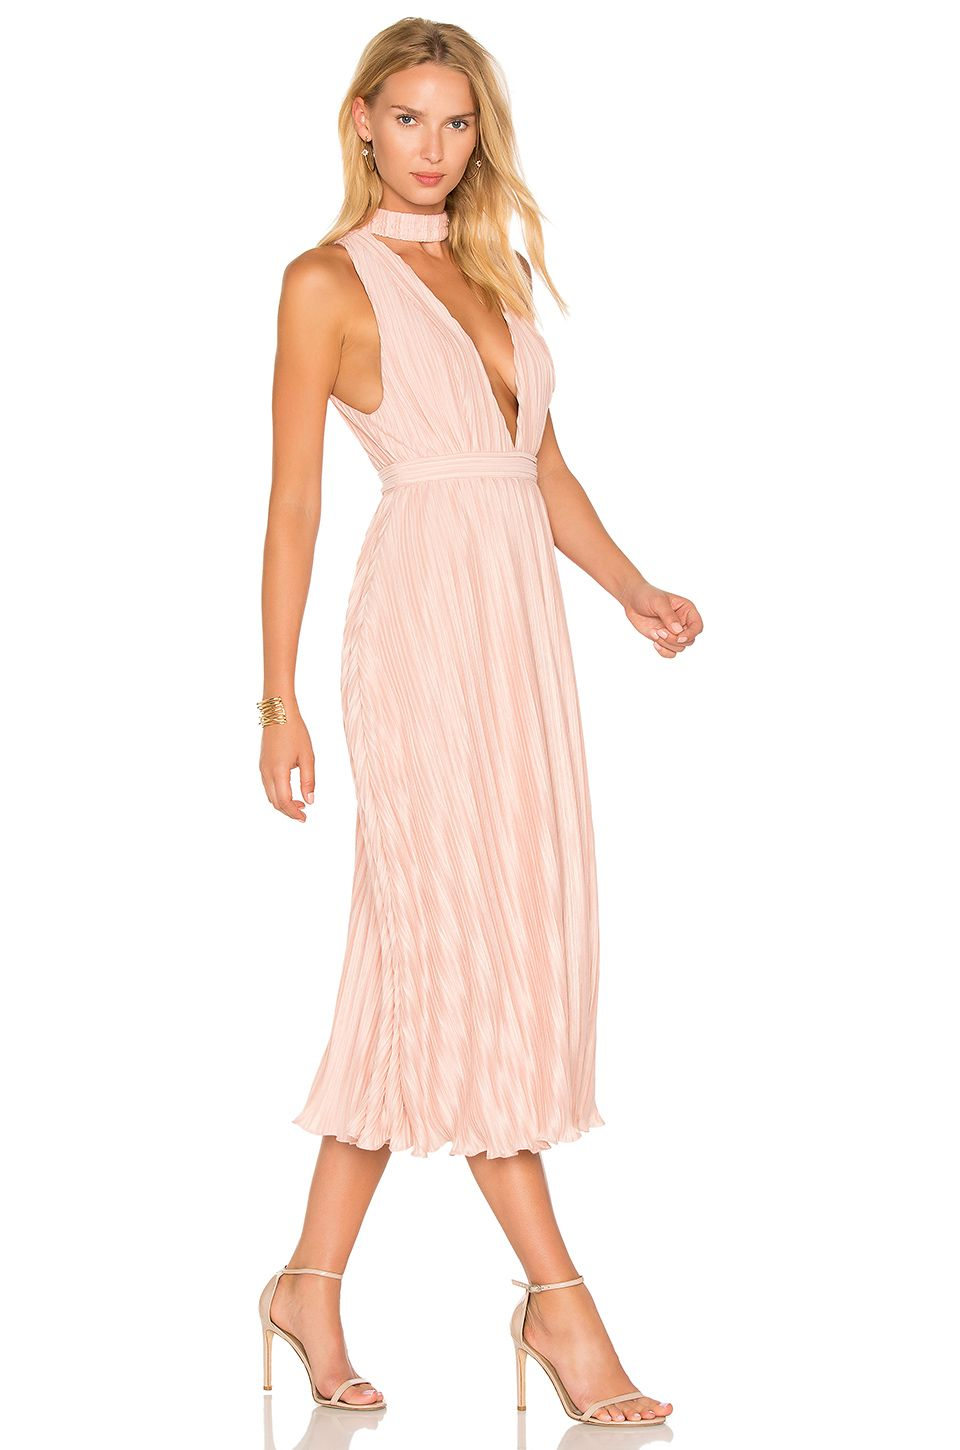 NBD Maeve Dress in Pale Nude | REVOLVE